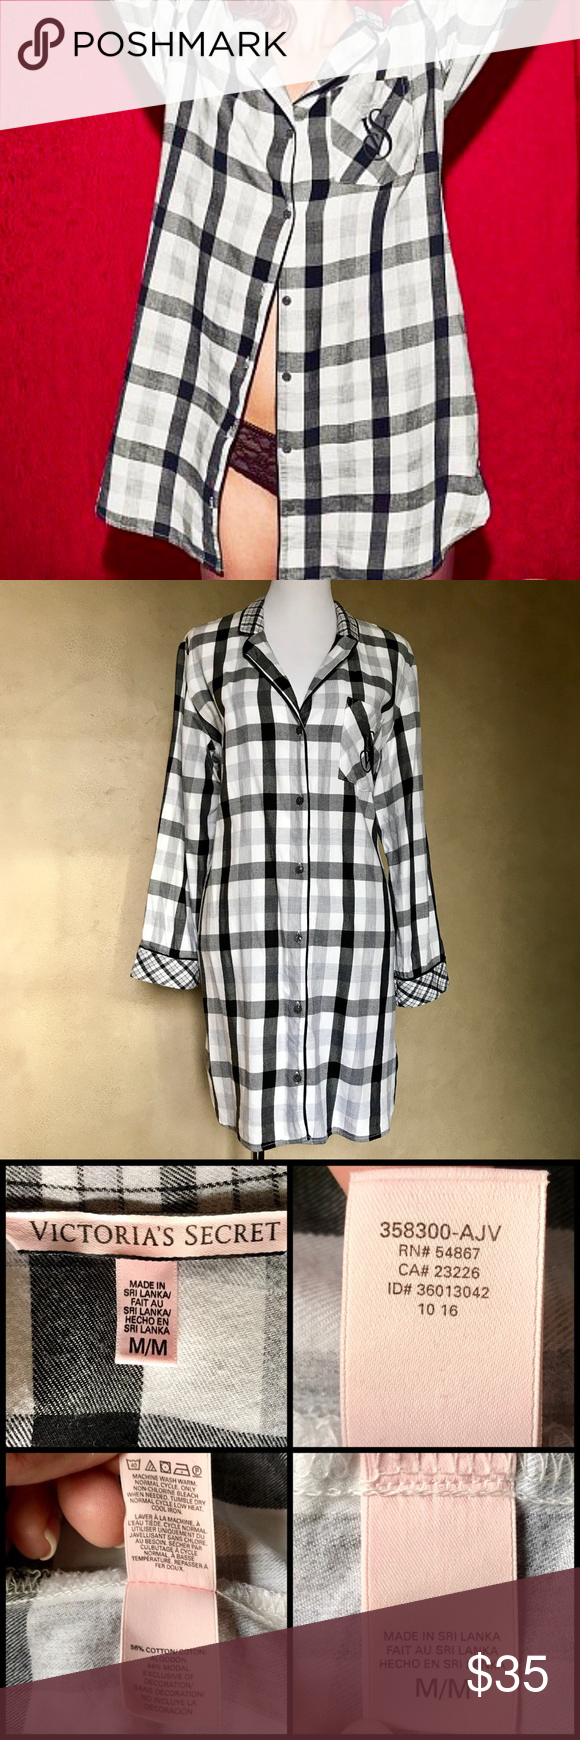 6b0b80ae619d5 Victoria's Secret EUC Long Sleeve Sleep Shirt EUC EUC Victoria's ...